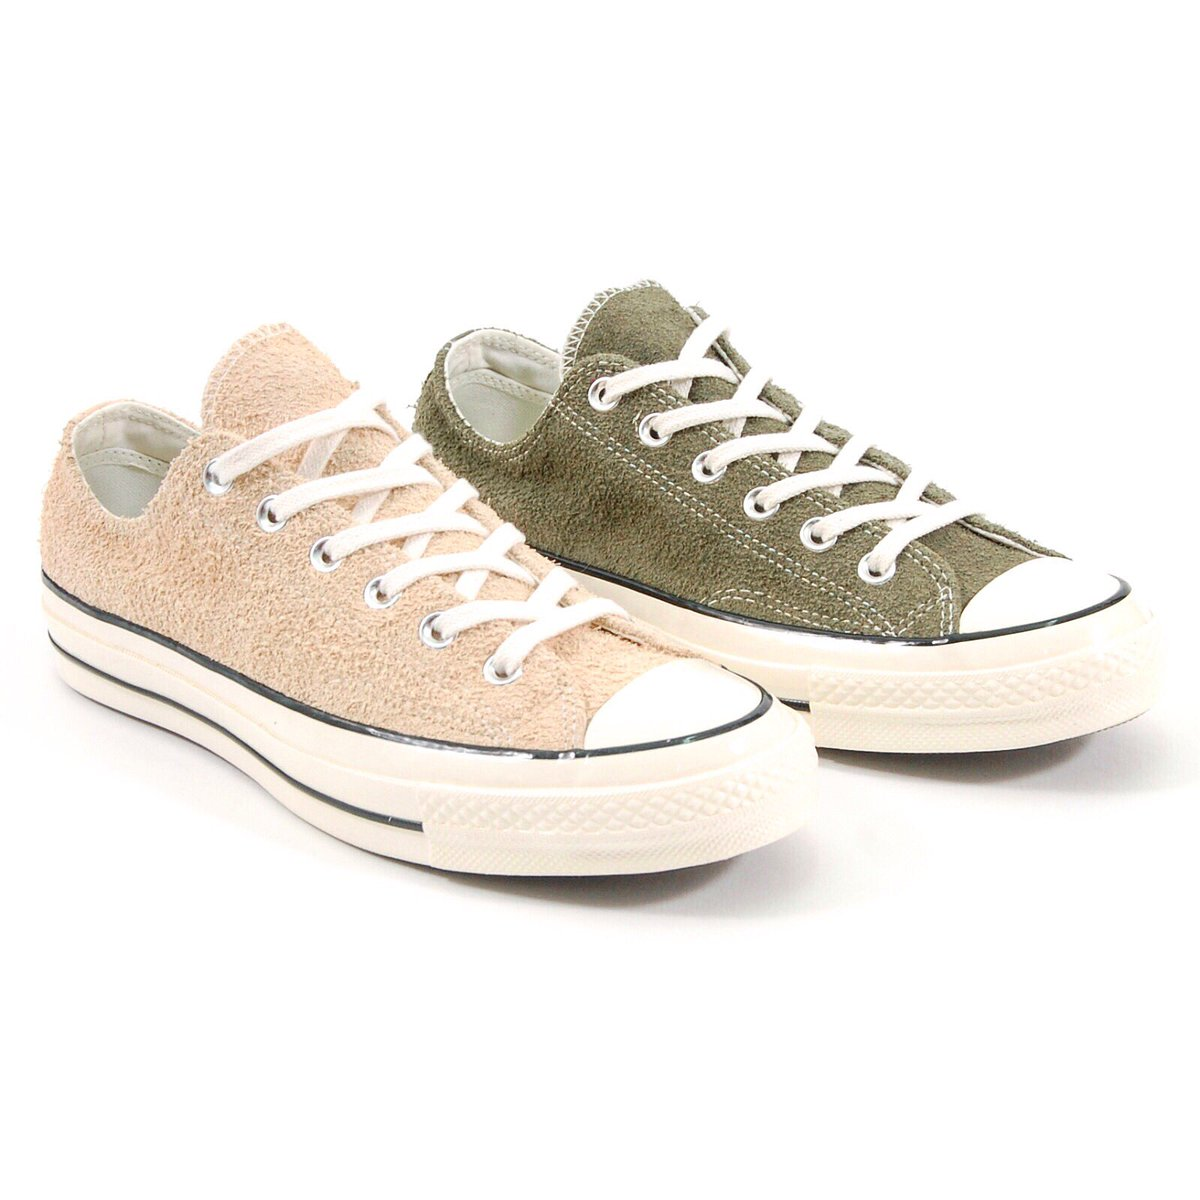 Check out the newest @converse Chuck 70